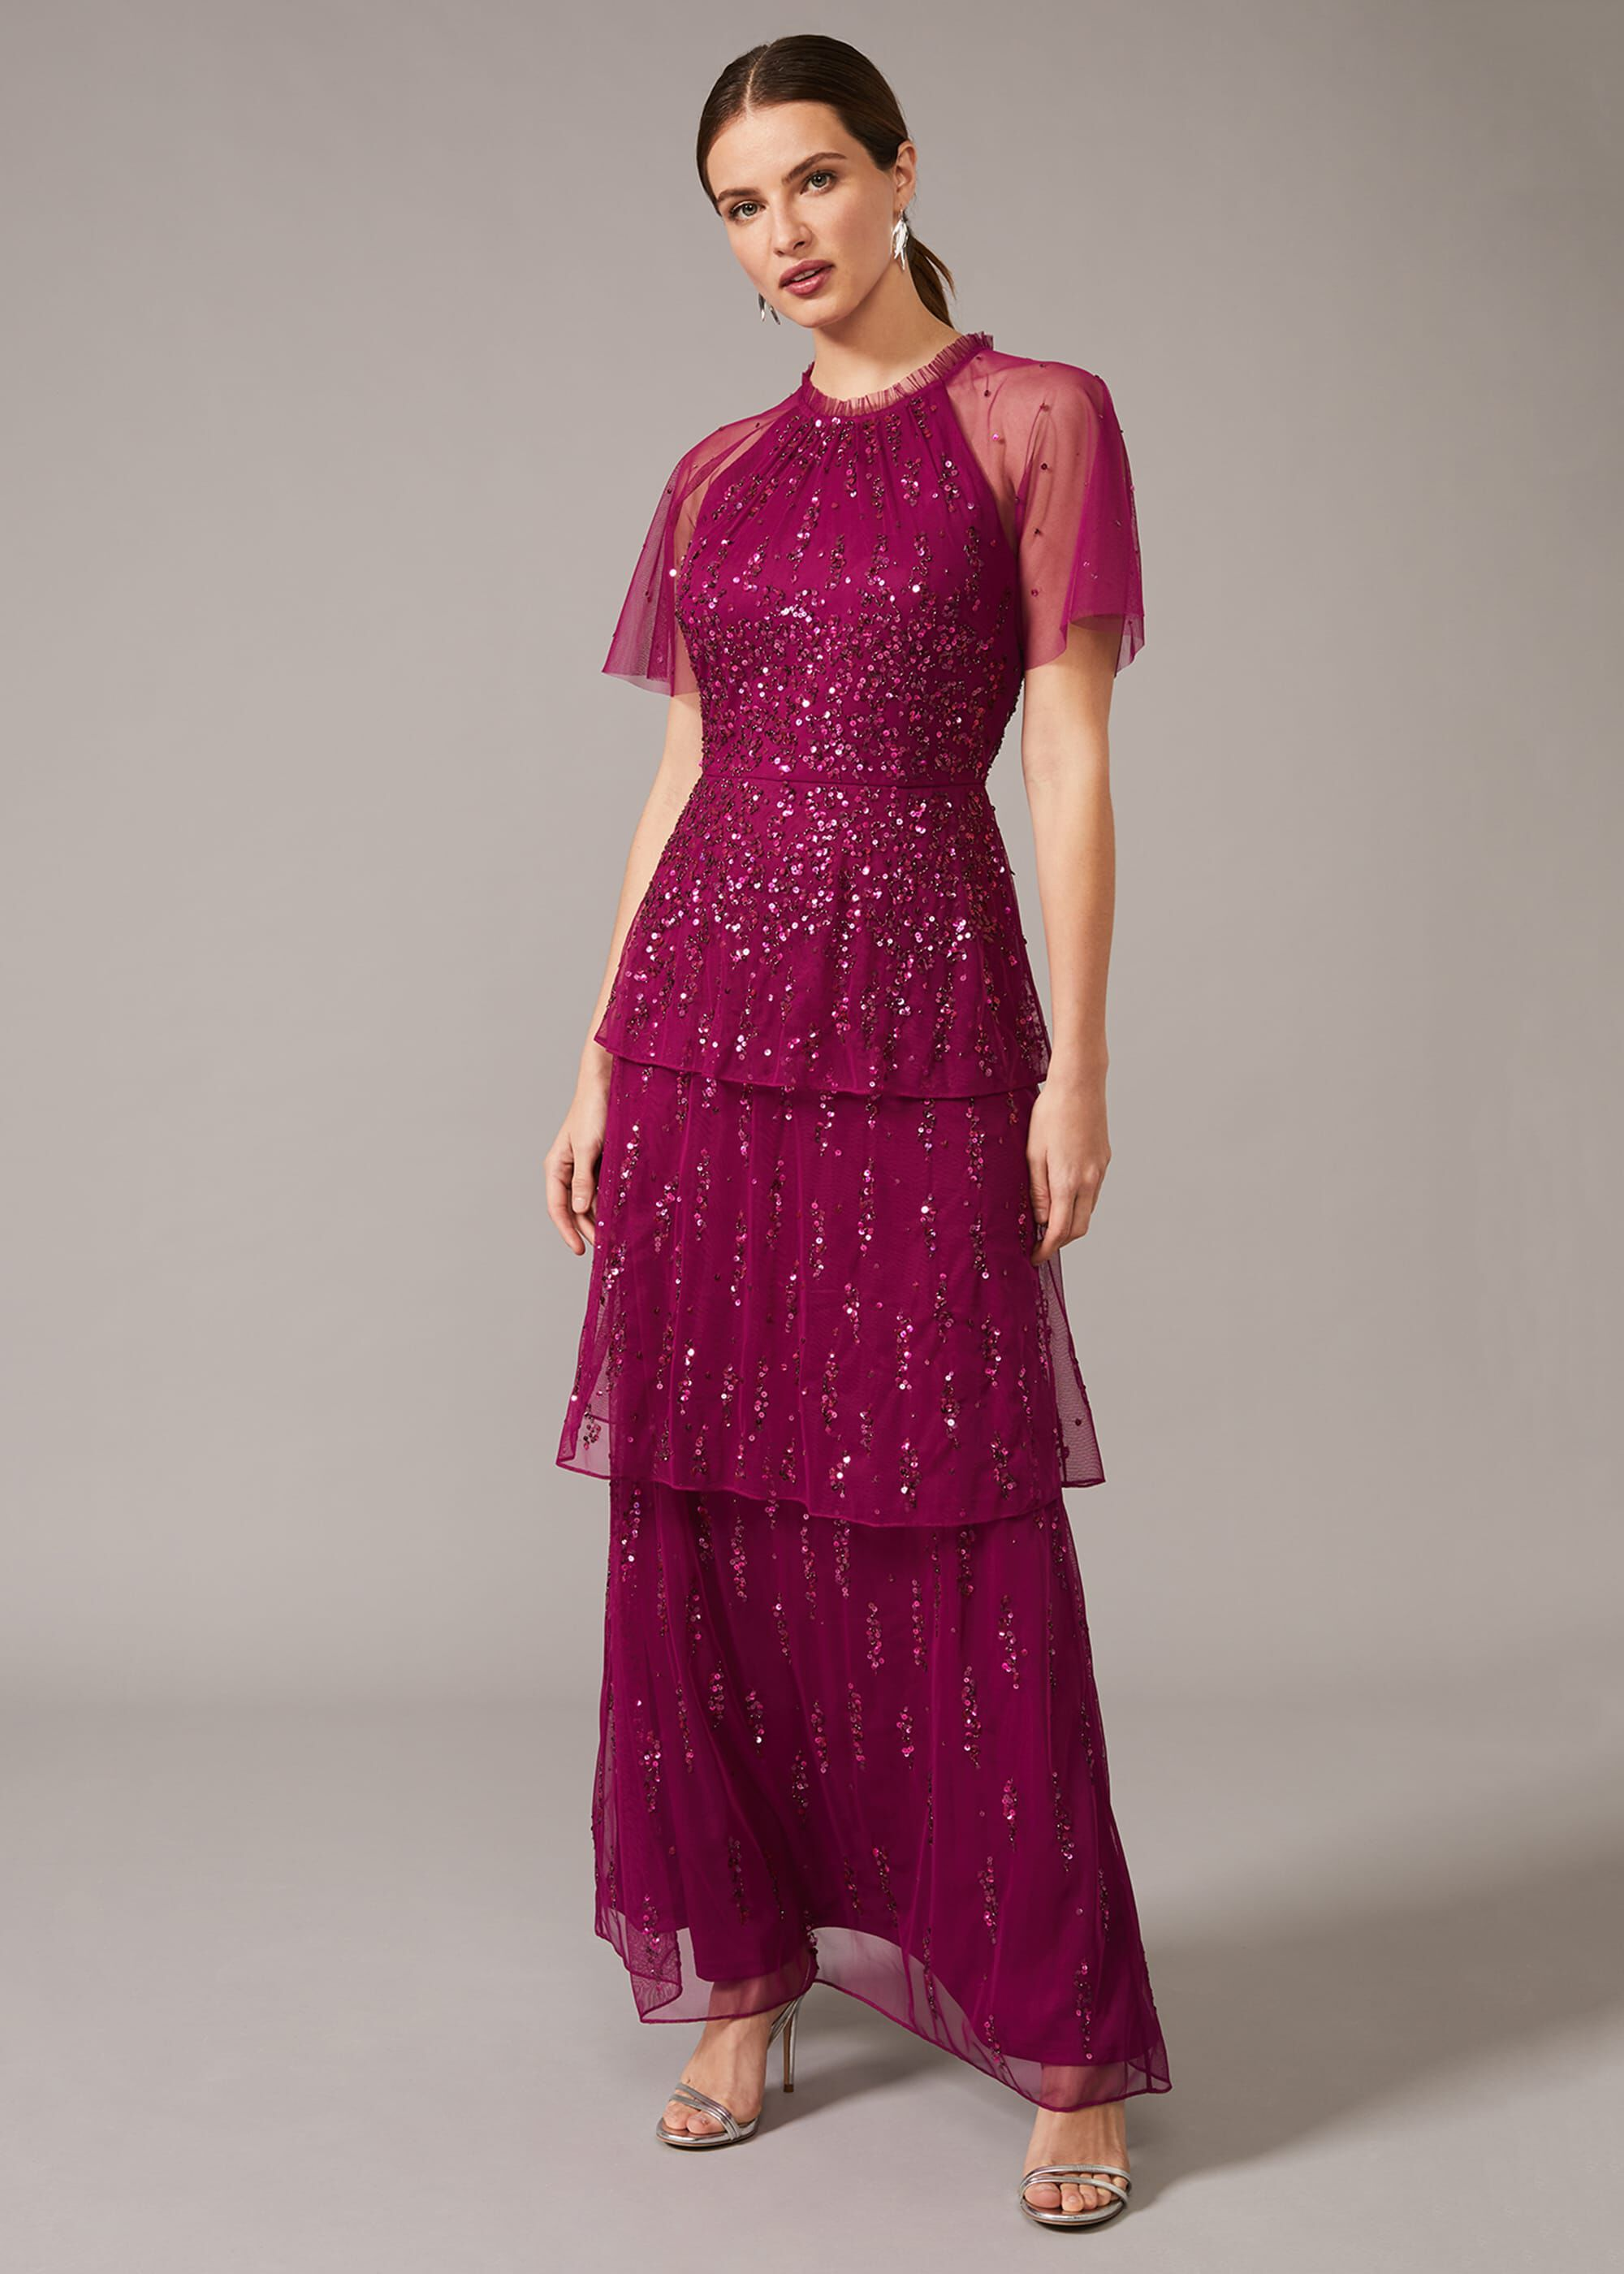 Phase Eight Liliana Tiered Embellished Dress, Red, Maxi, Occasion Dress